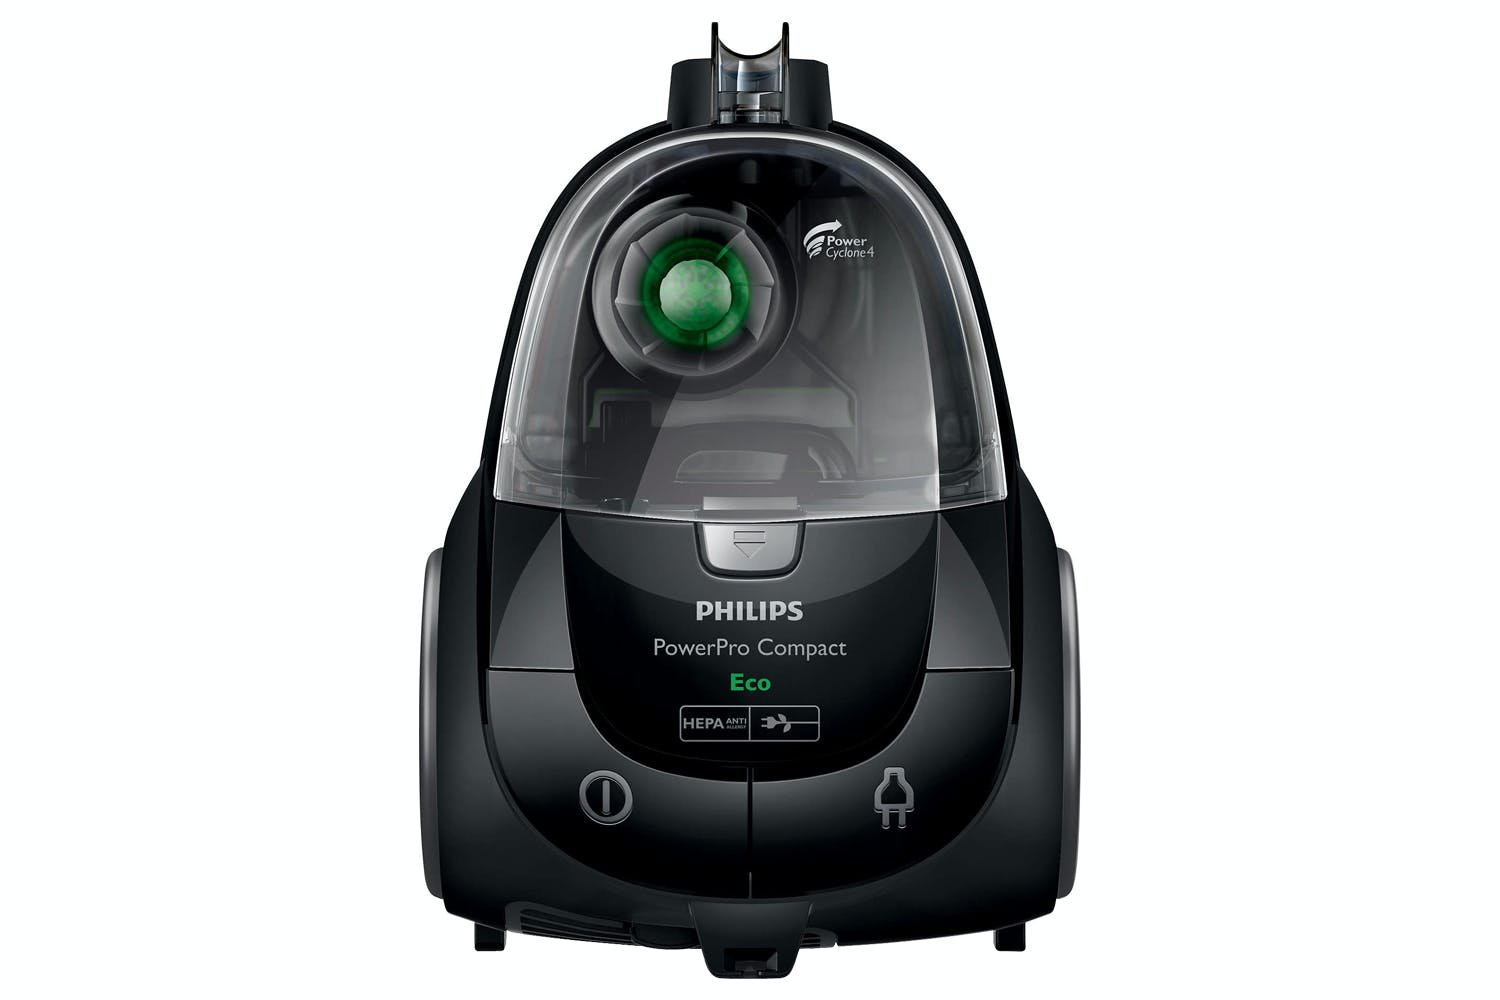 Philips PowerPro Compact Bagless Vacuum Cleaner | FC8477/91